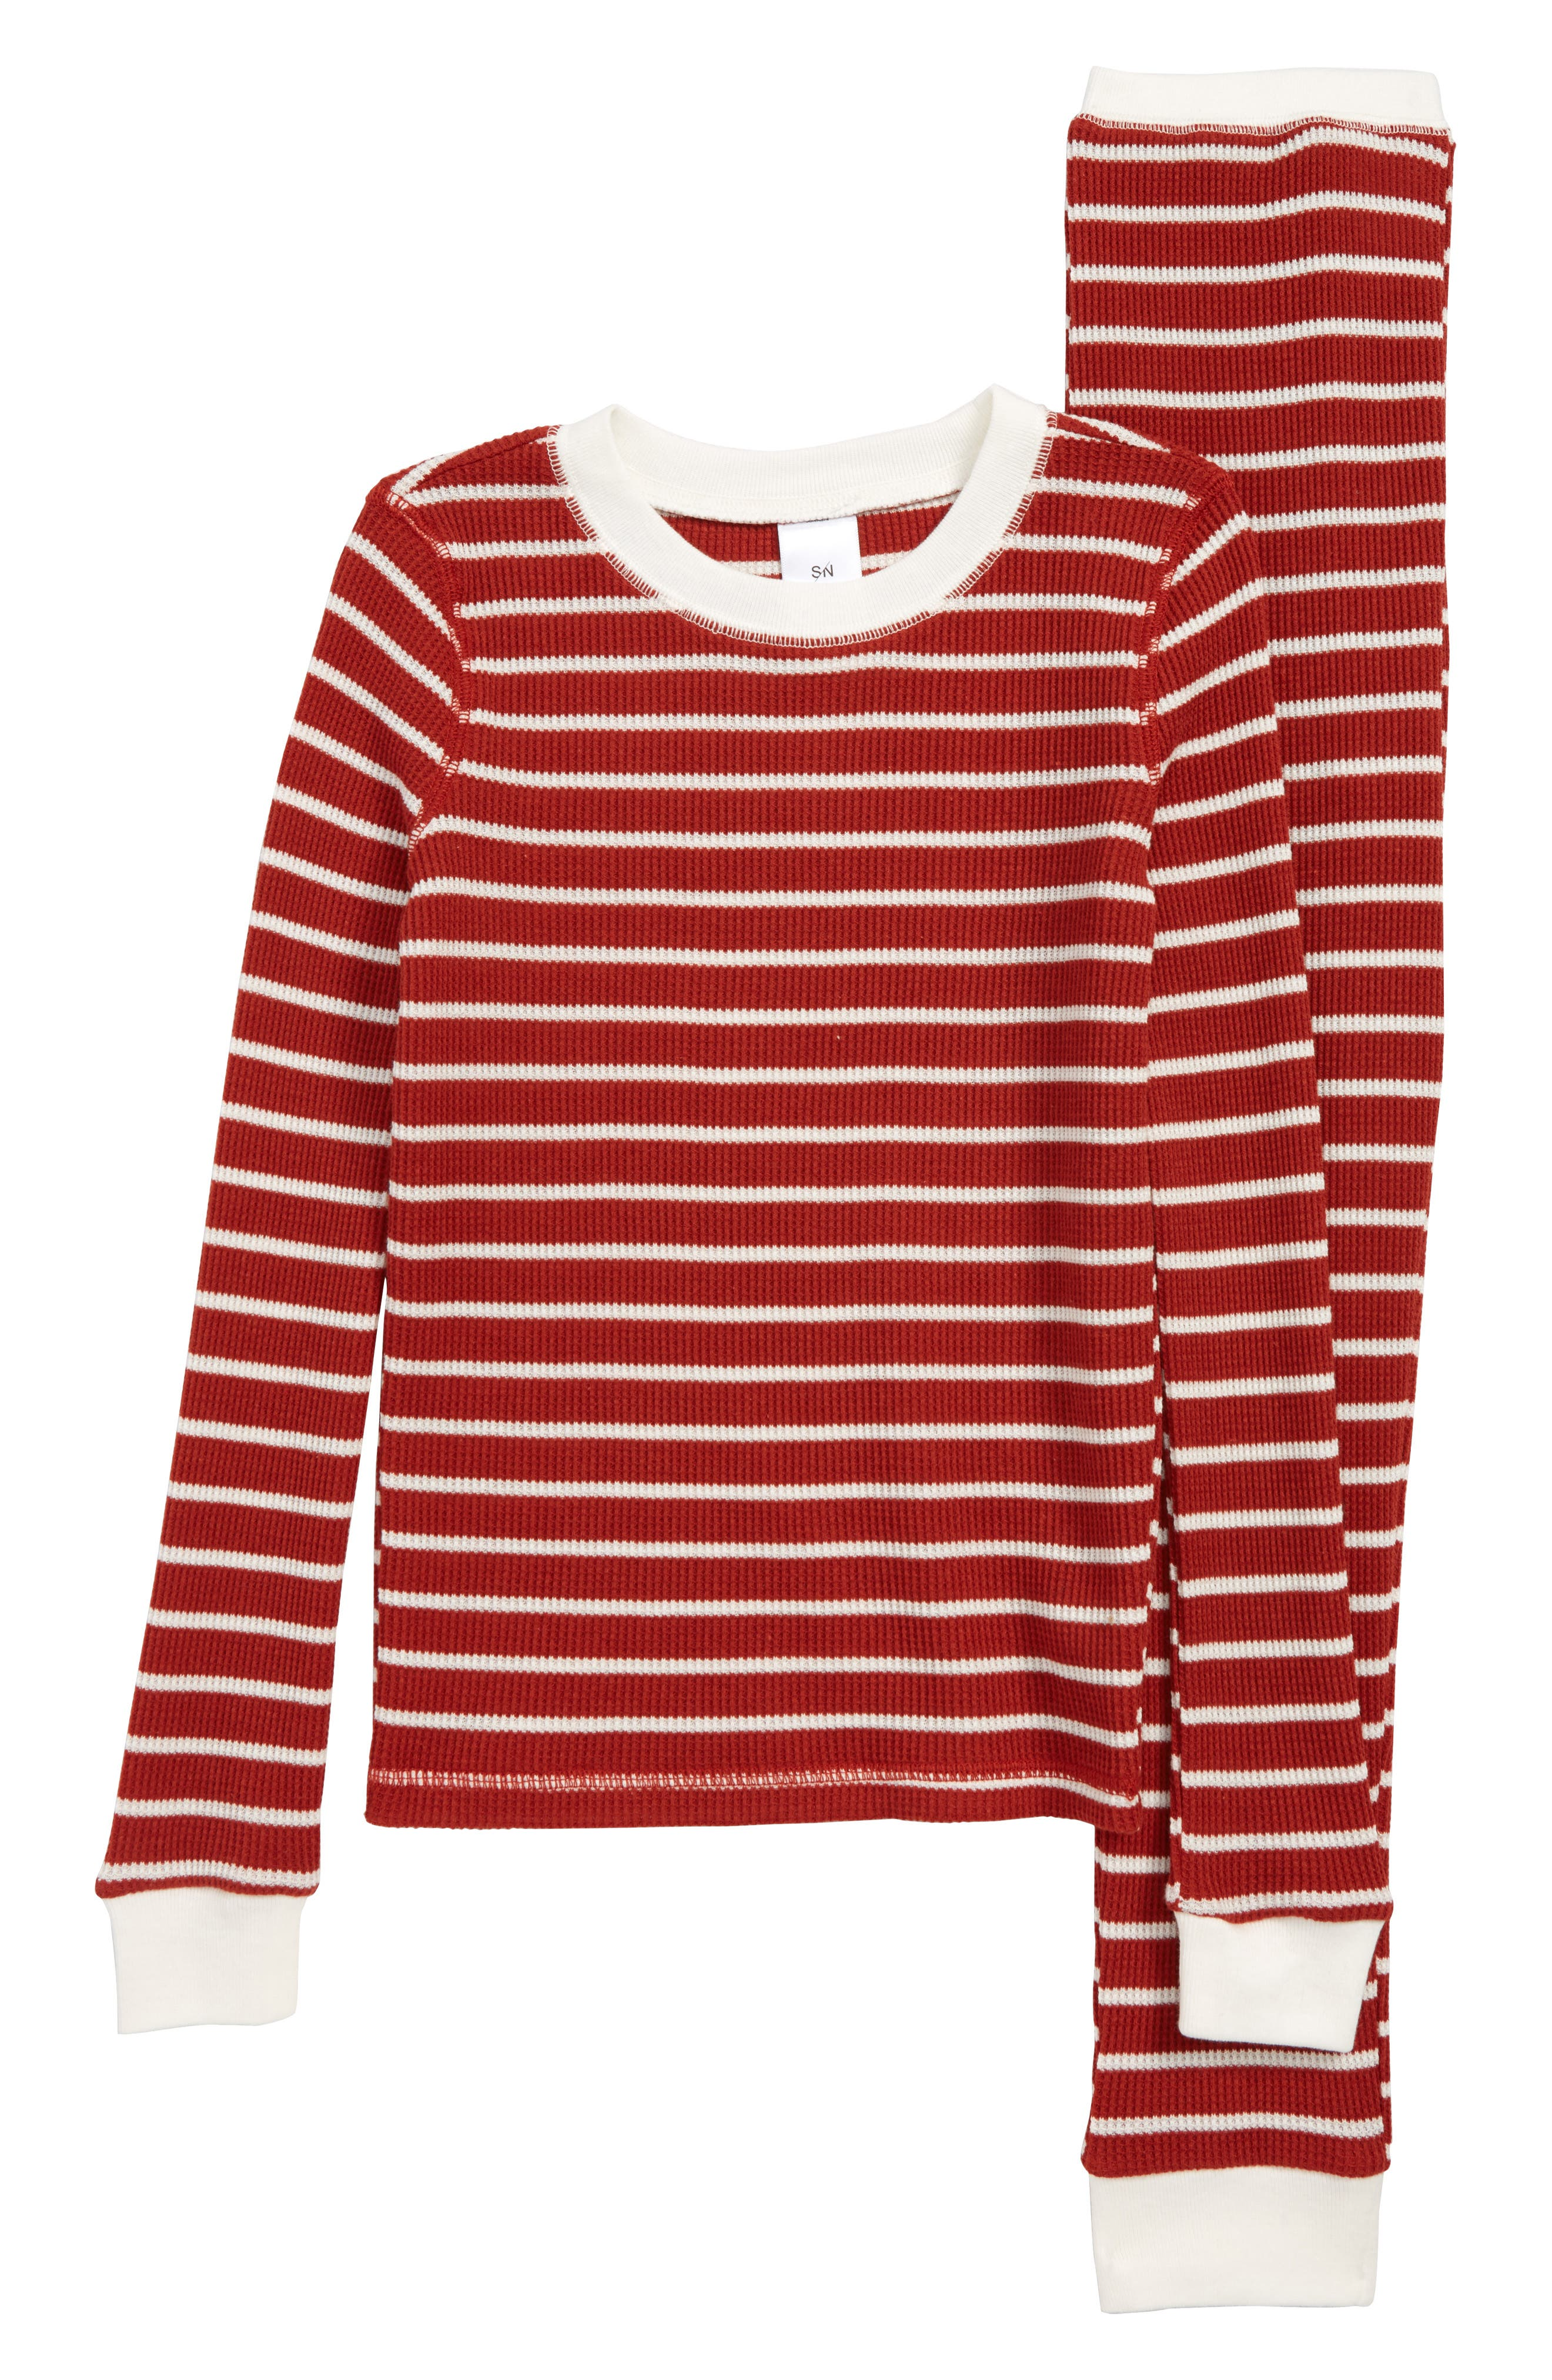 Thermal Fitted Two-Piece Pajamas,                         Main,                         color, RED AND WHITE STRIPE